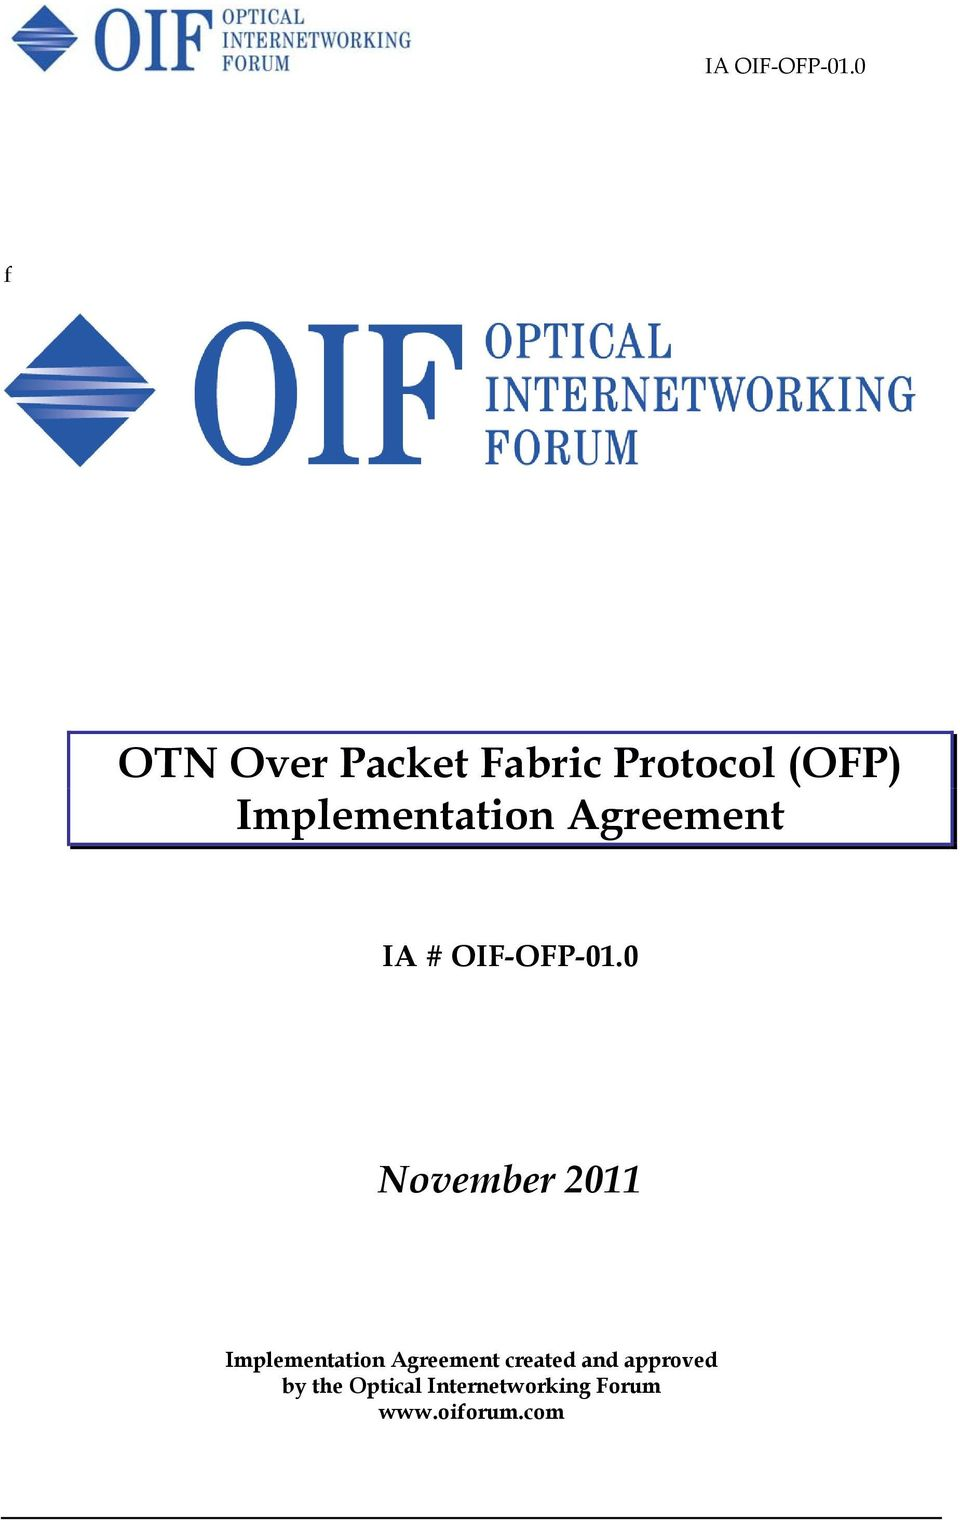 Implementation Agreement IA # OIF-OFP-0.